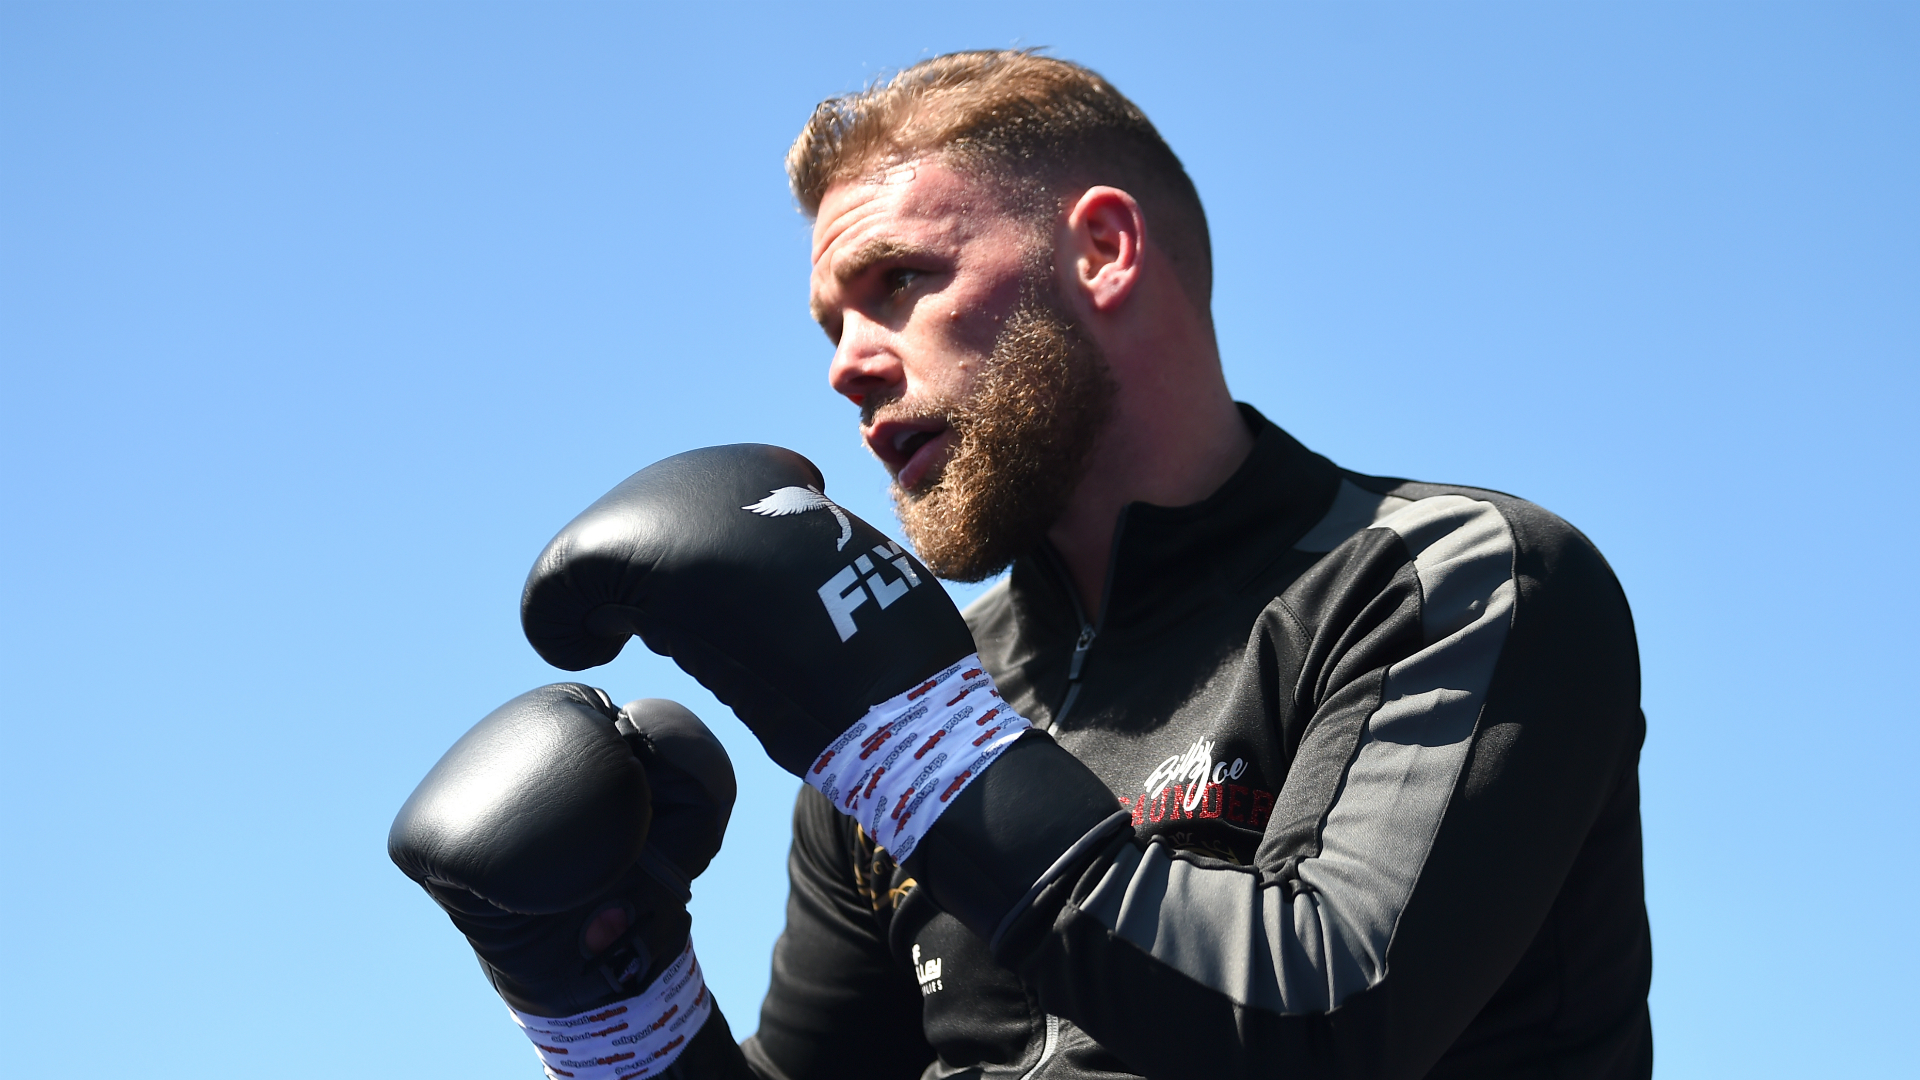 Billy Joe Saunders apologises for domestic violence advice video